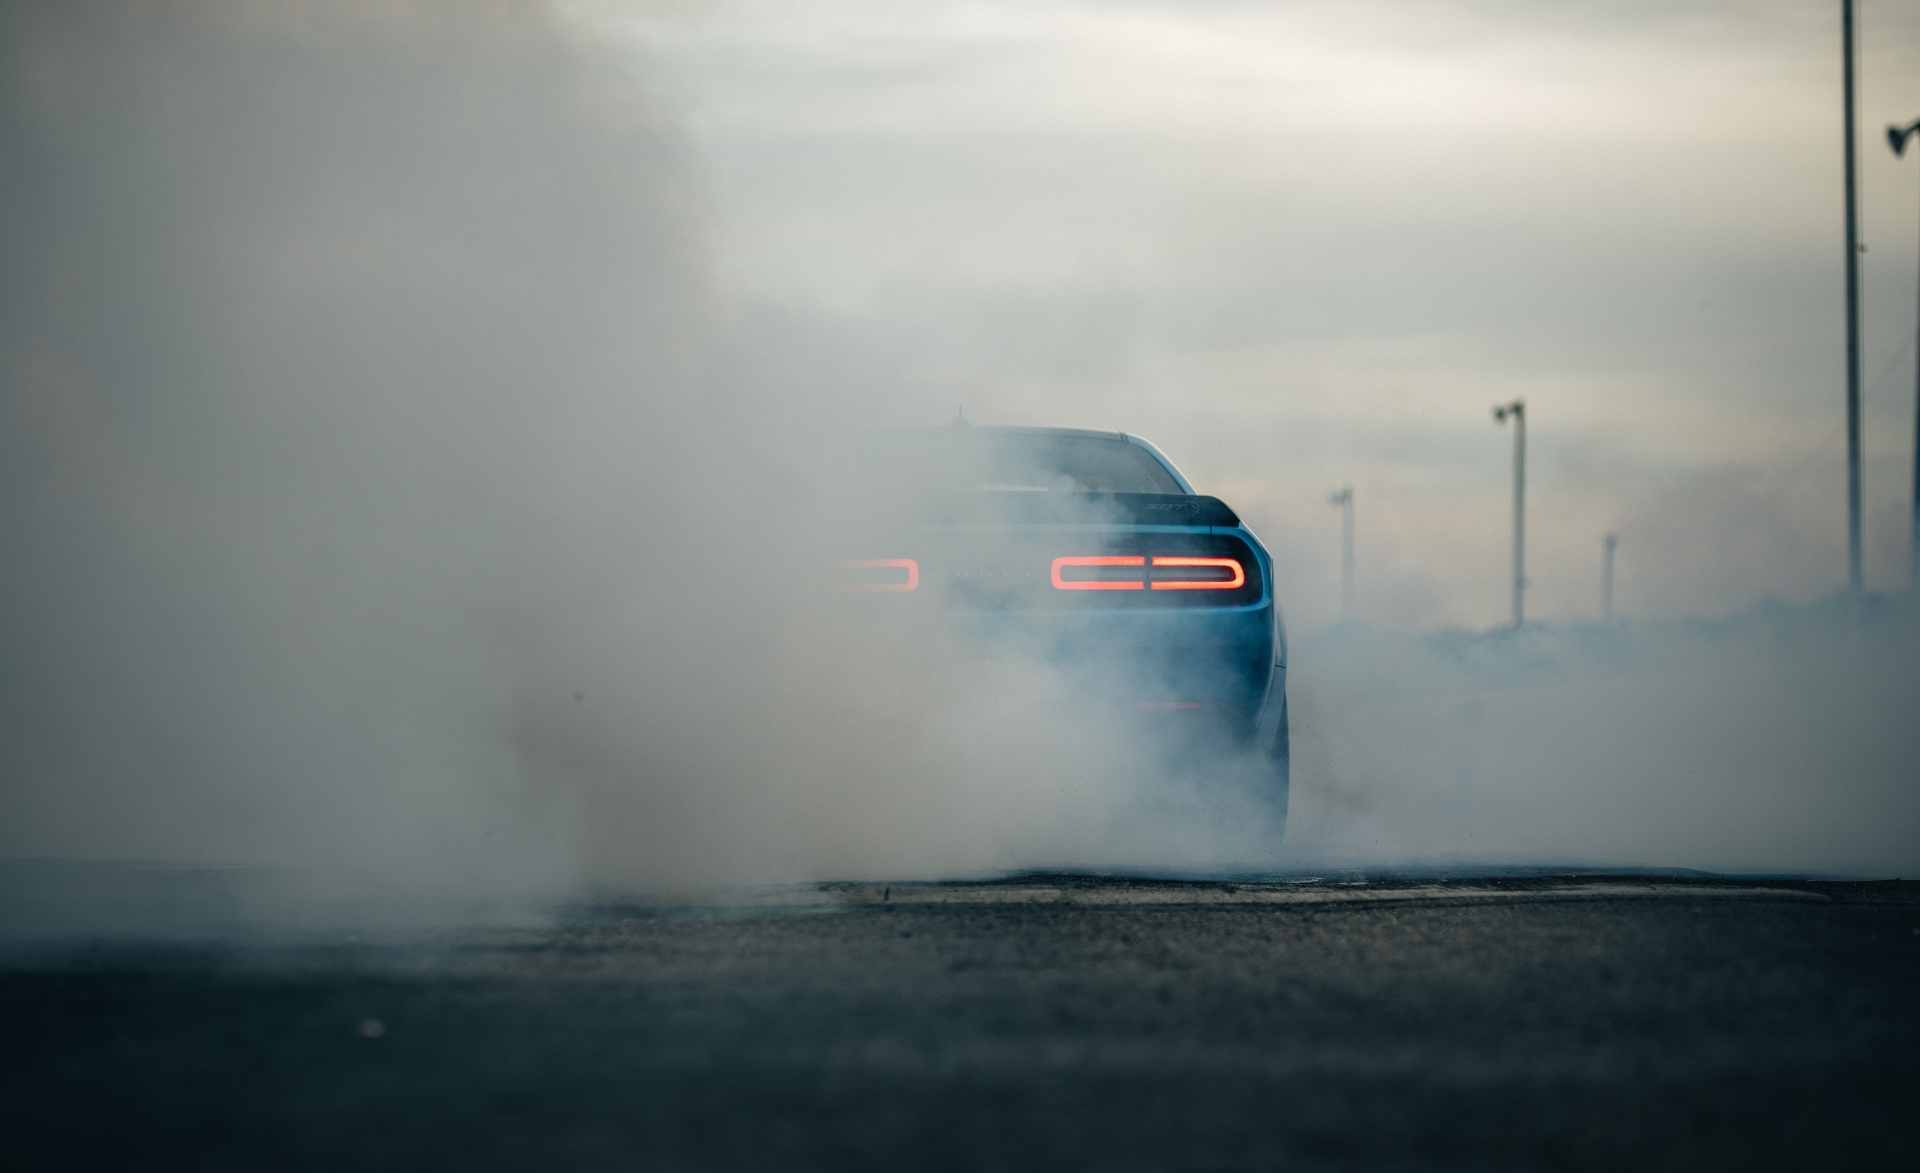 2019 Dodge Challenger SRT Hellcat Redeye Burnout Wallpaper (9)